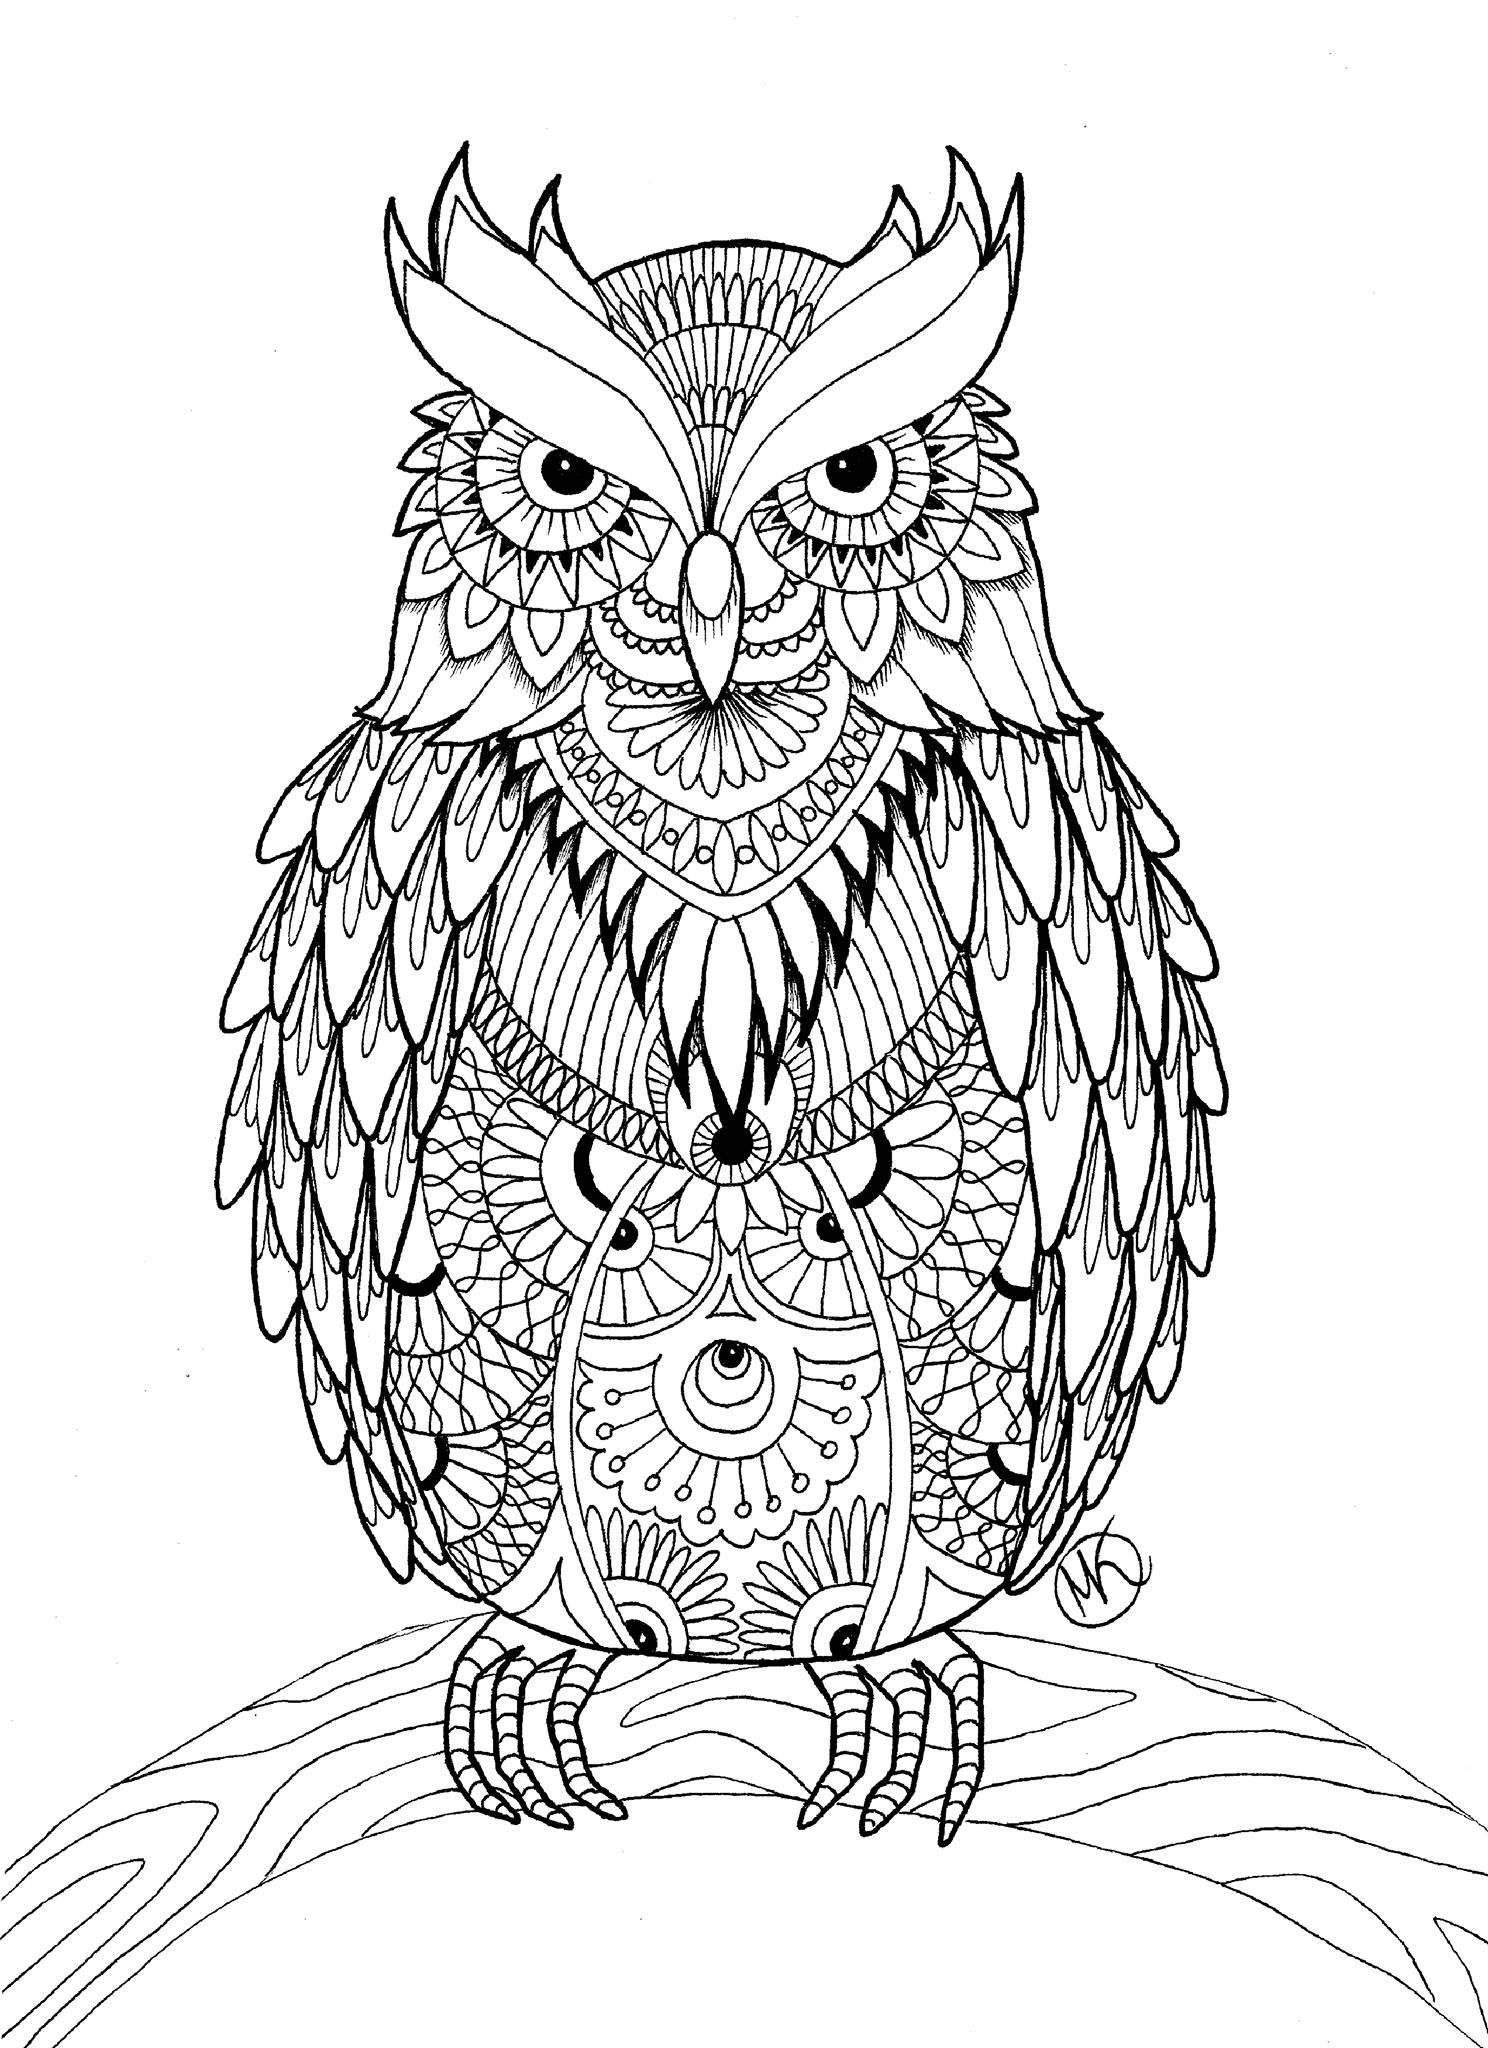 Artist Miedzy Kreskami Owl Coloring Pages Animal Coloring Pages Bird Coloring Pages